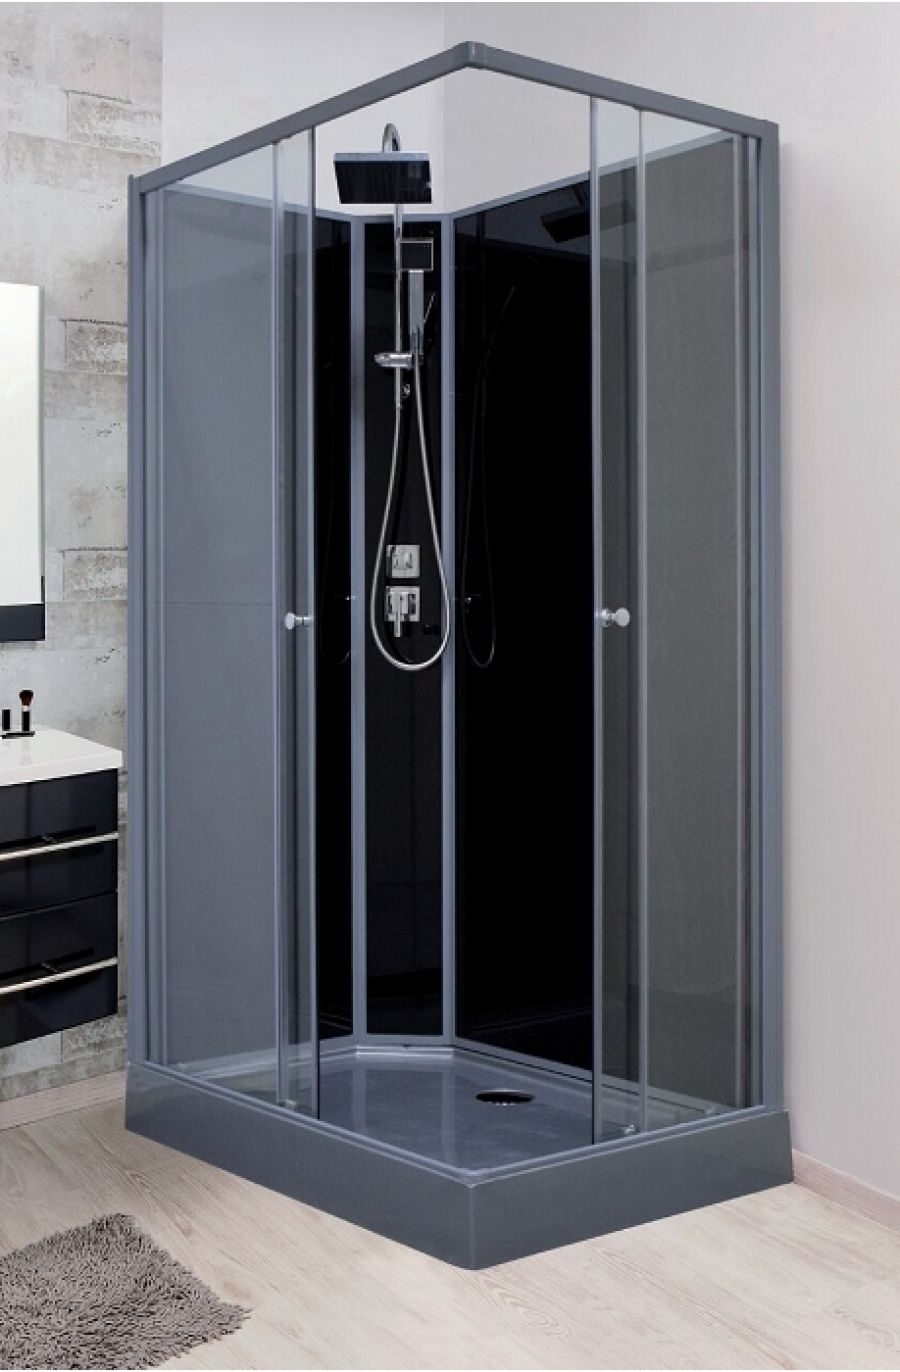 cabine de douche rectangulaire mayline 120x80 meuble de salle de bain douche. Black Bedroom Furniture Sets. Home Design Ideas